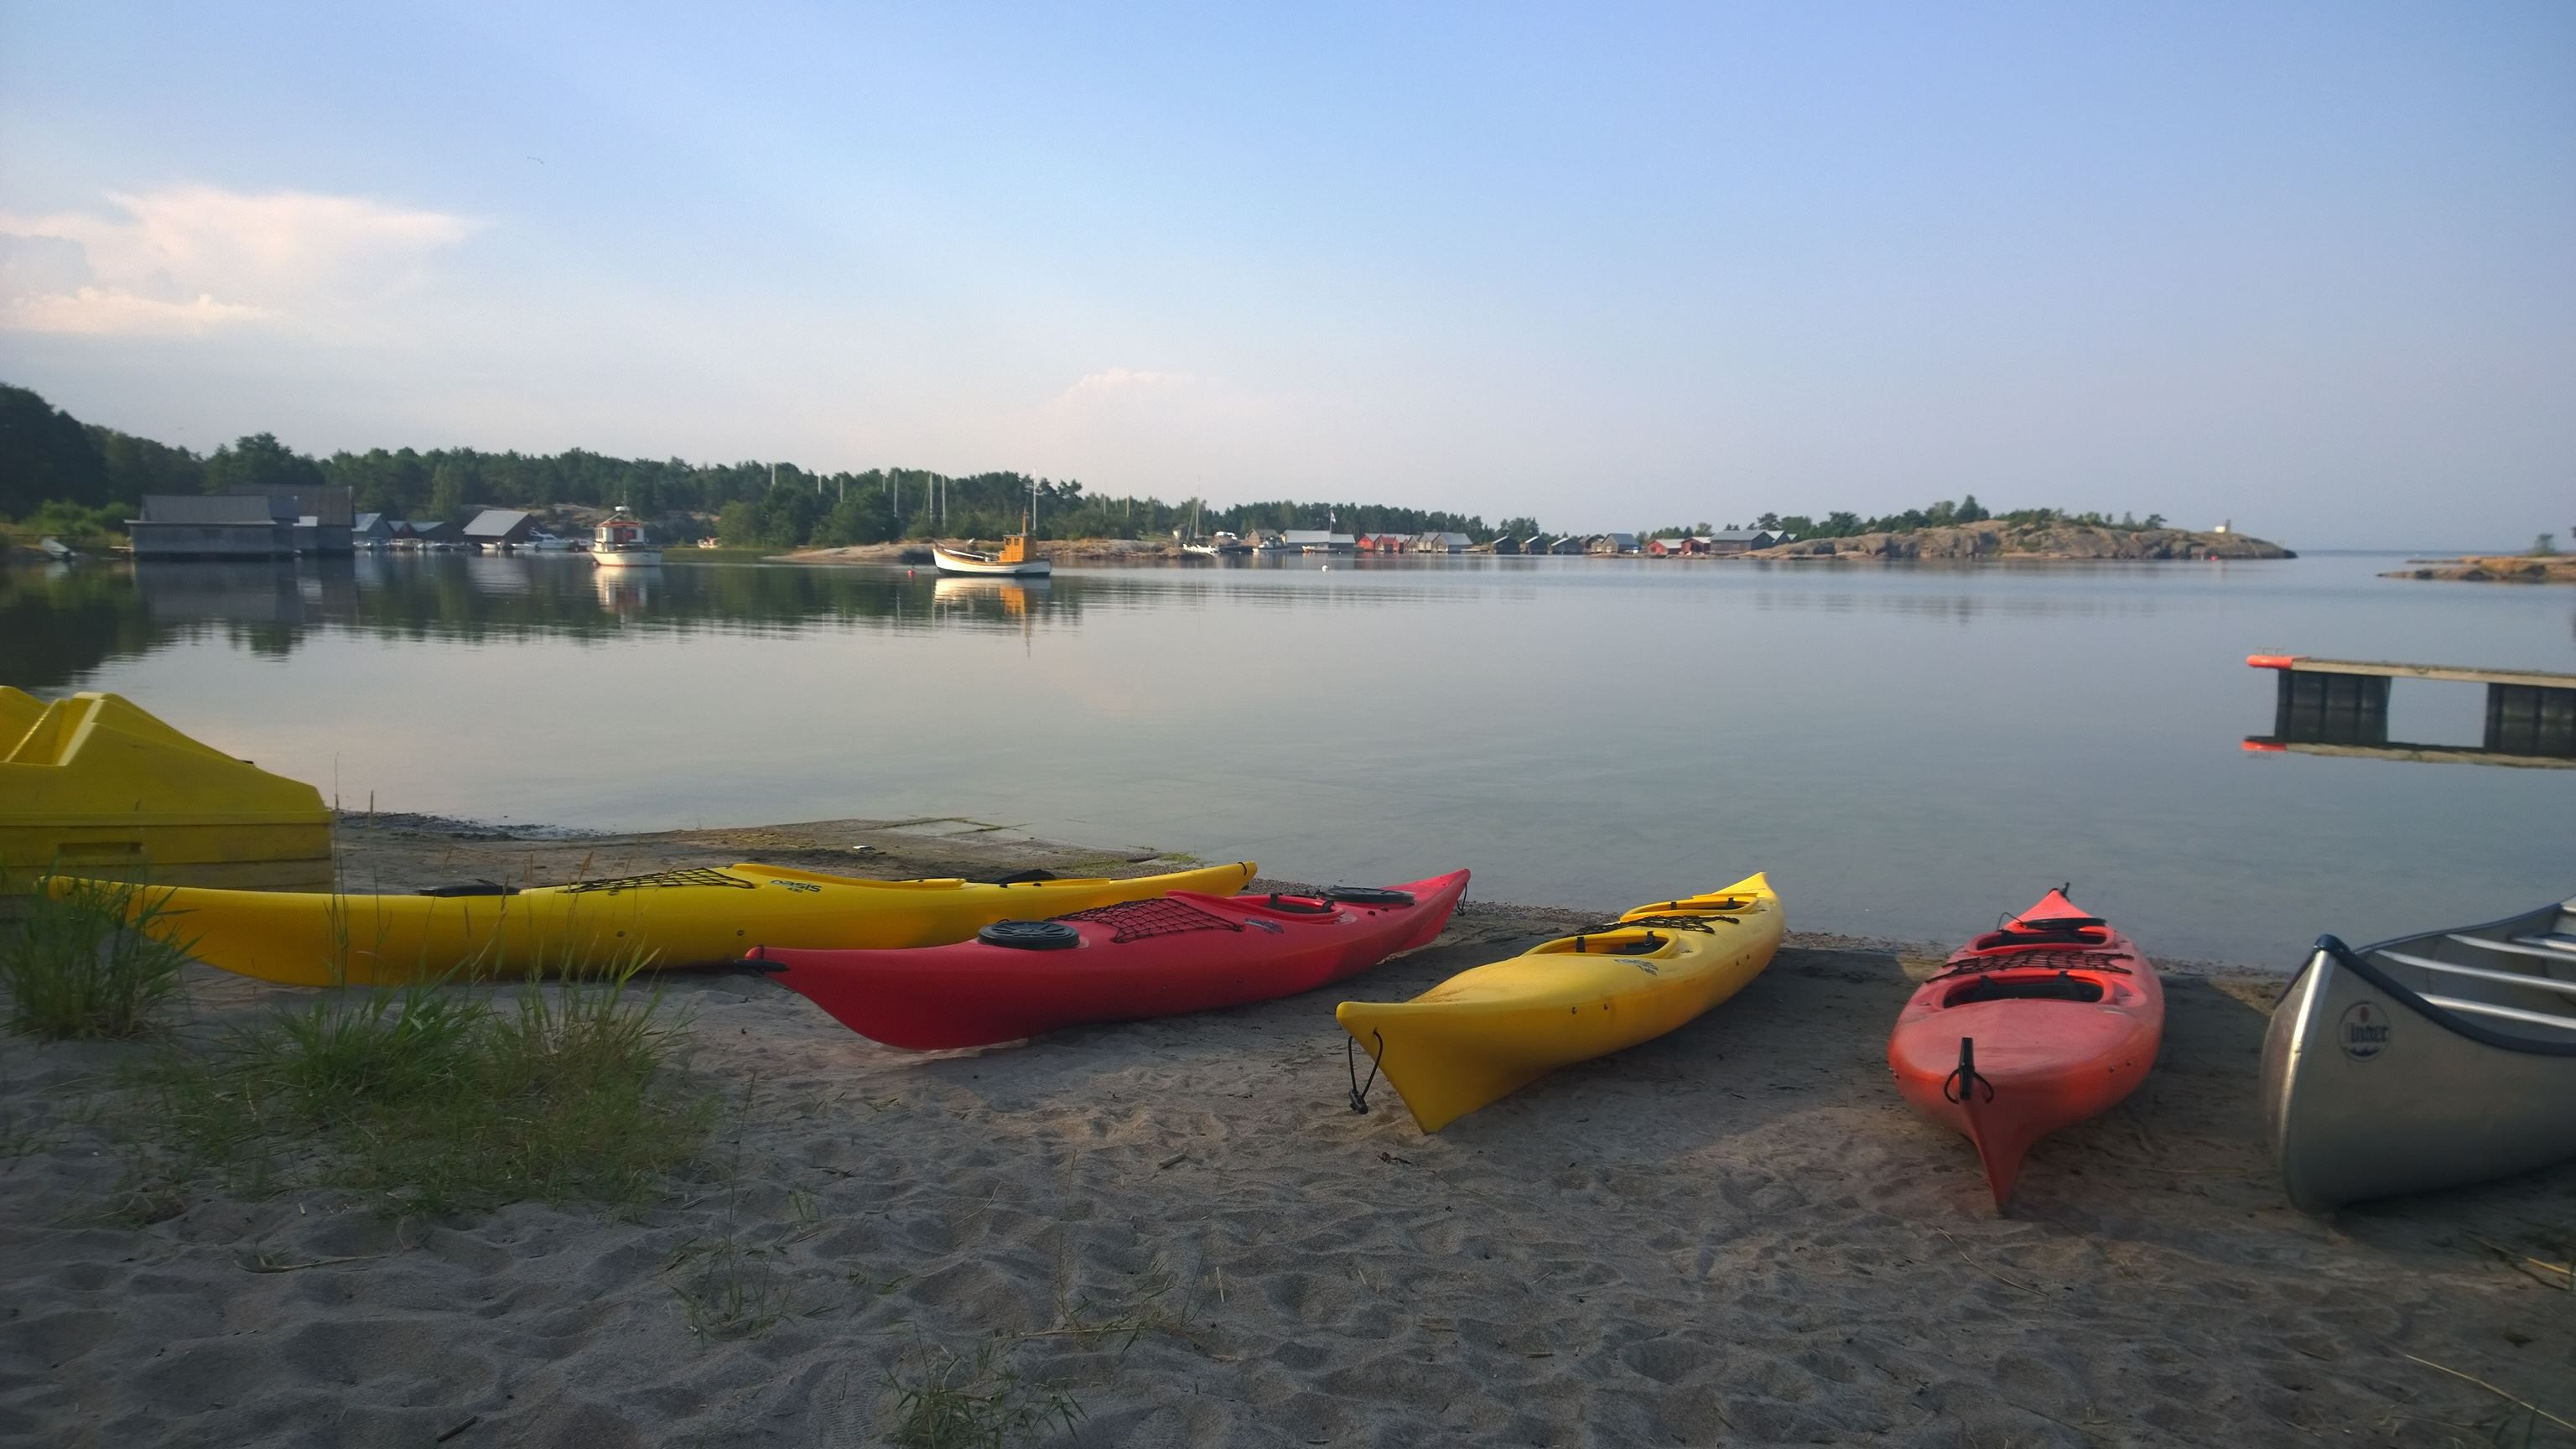 Single kayak for beginners